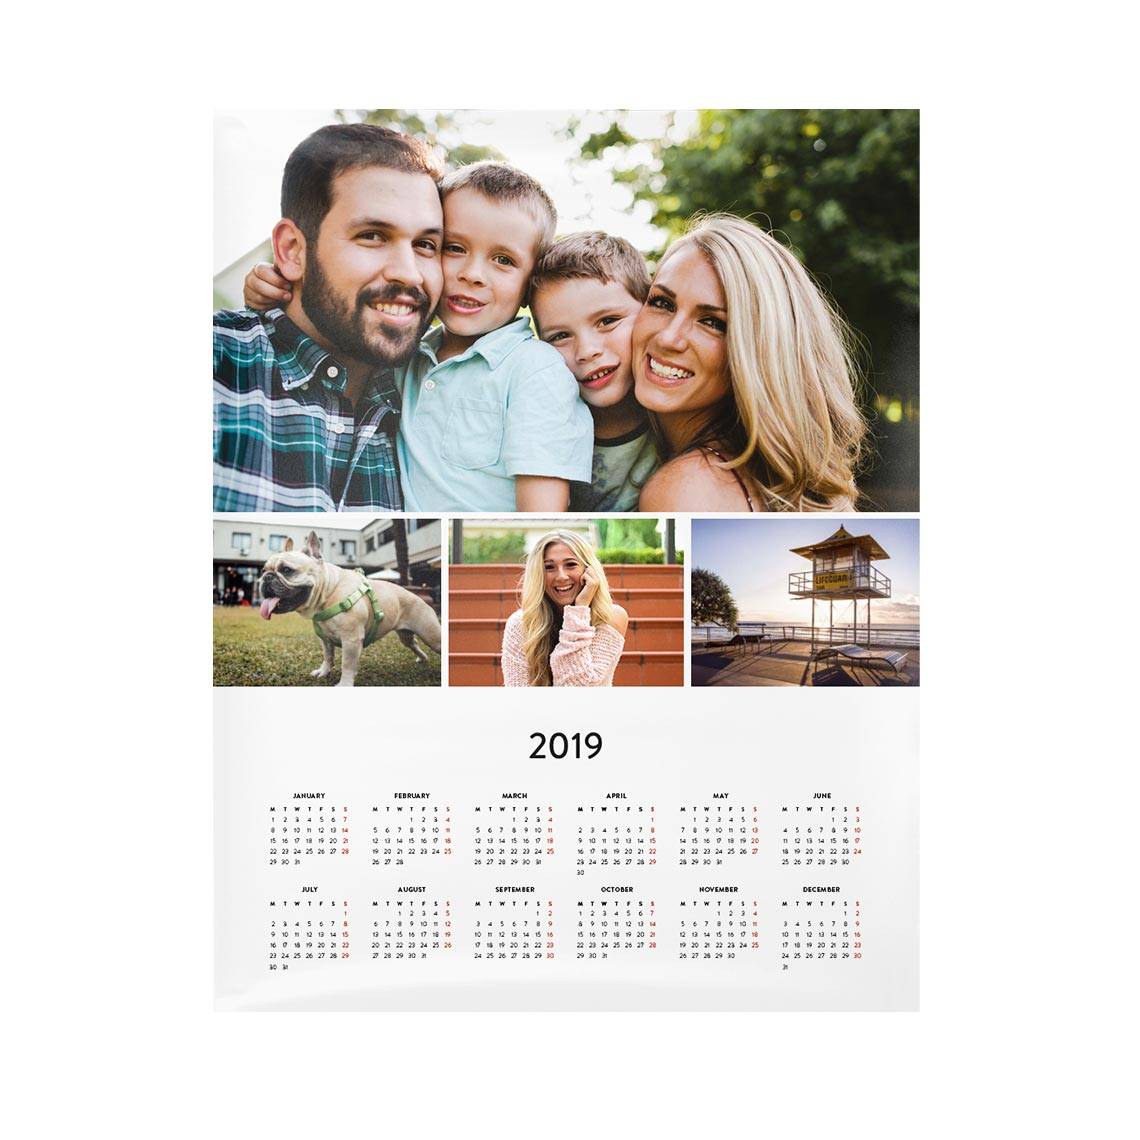 A calender with image of family